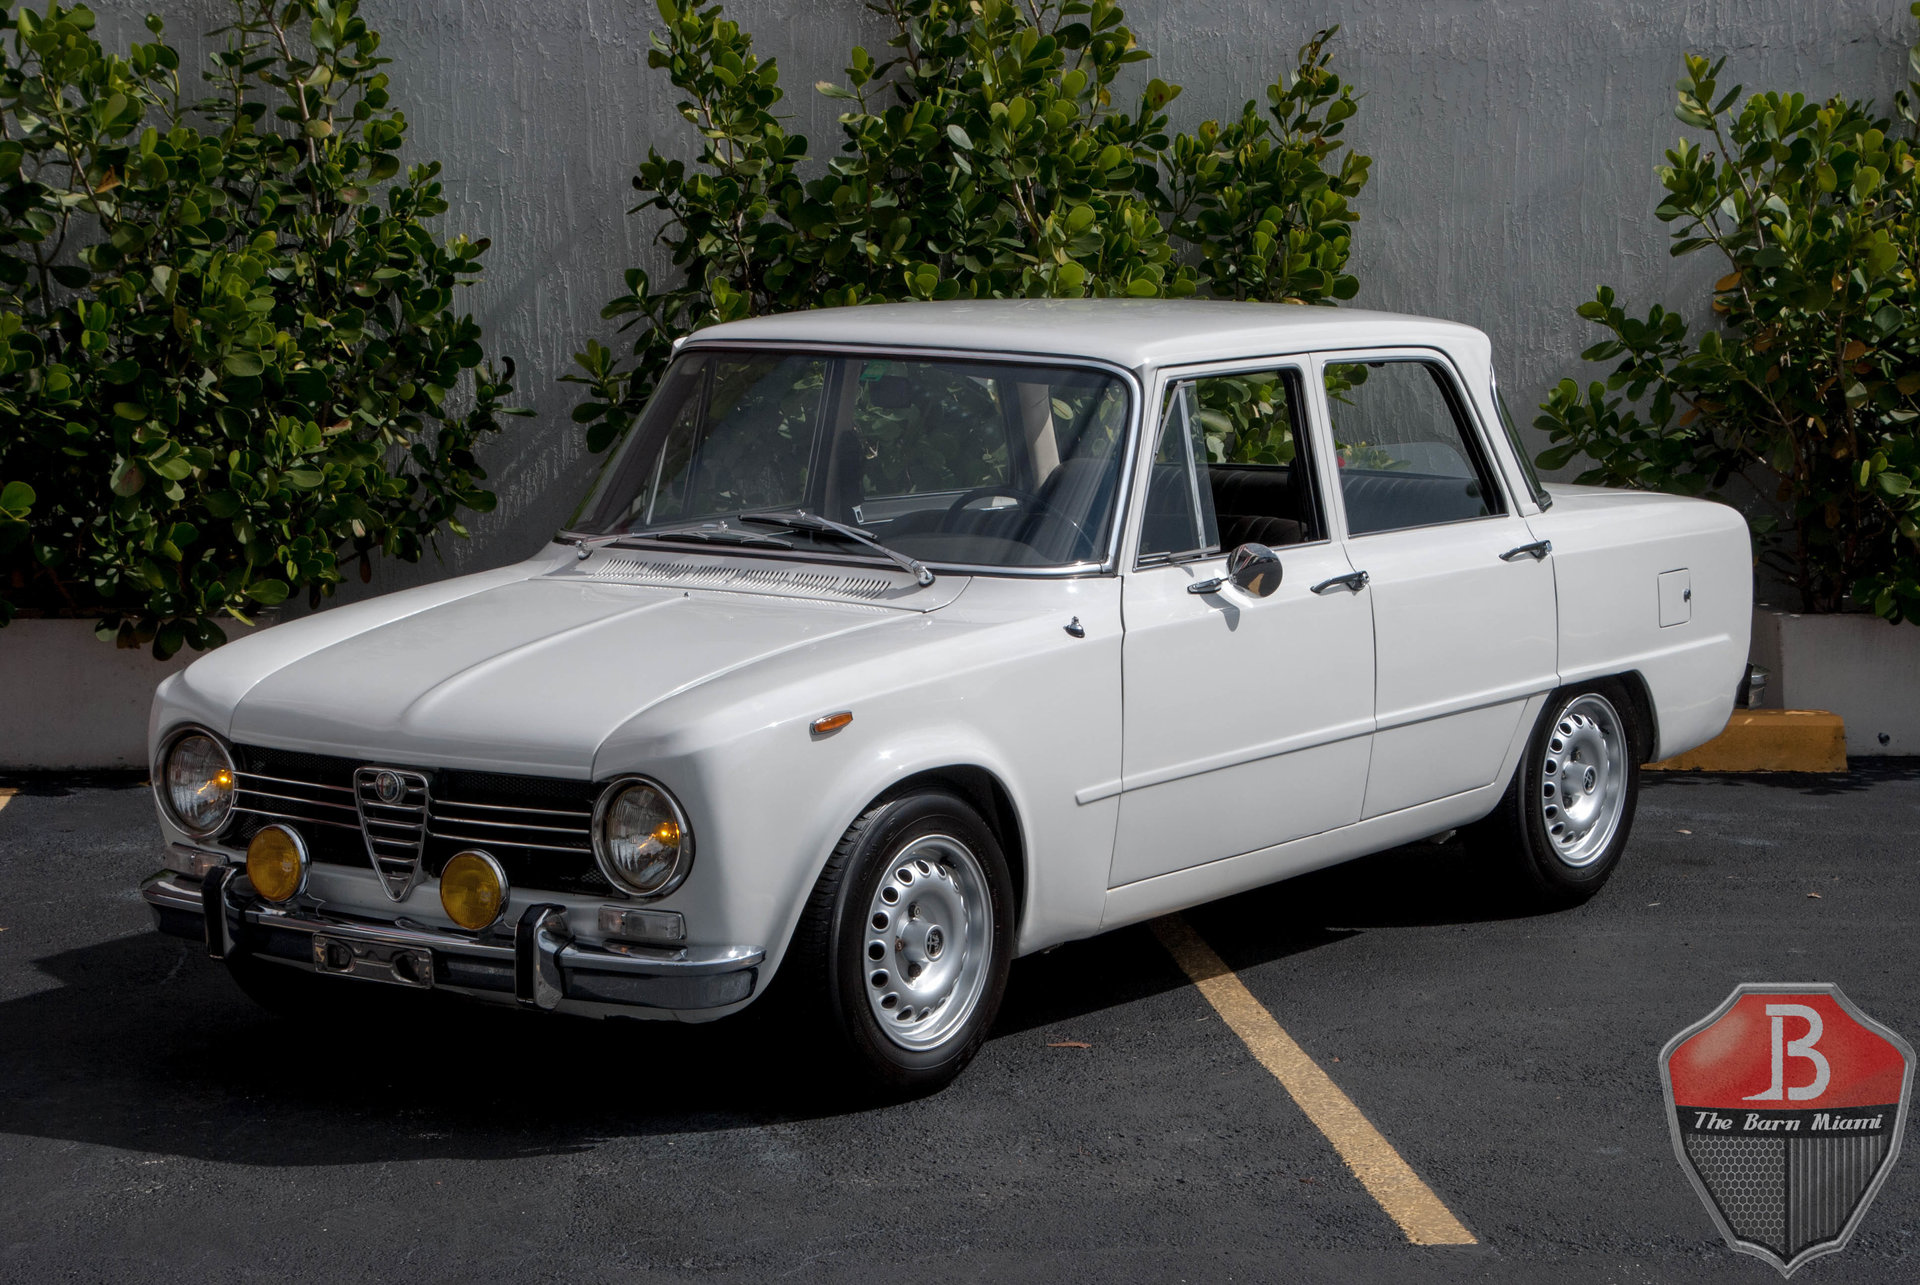 1970 alfa romeo giulia 1300 ti for sale 74252 mcg. Black Bedroom Furniture Sets. Home Design Ideas